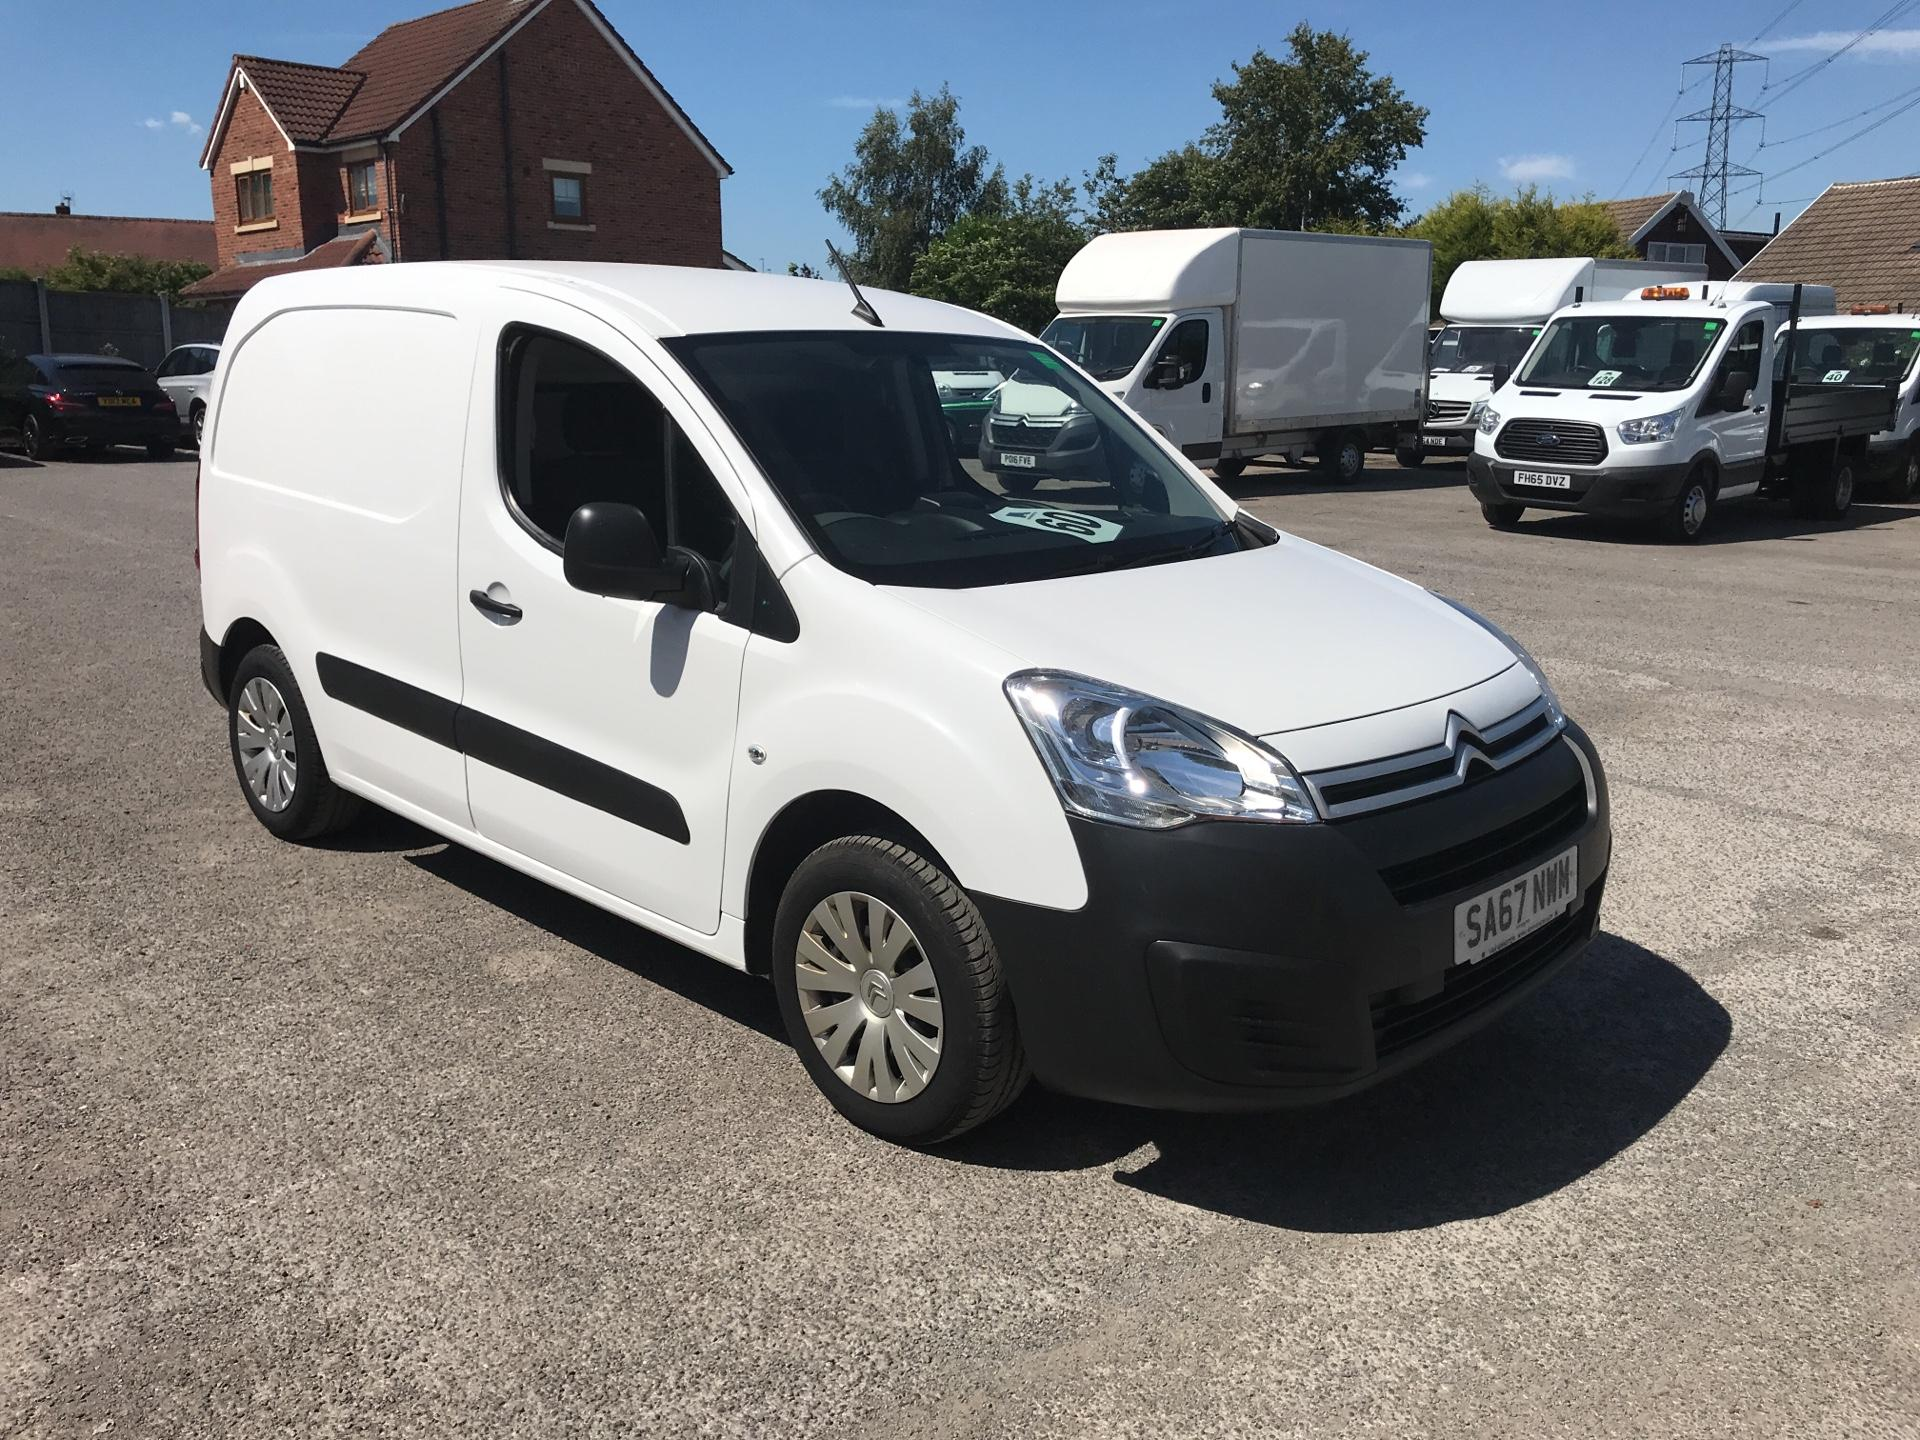 2017 Citroen Berlingo L1 DIESEL 1.6 BLUE HDI 625KG ENTERPRISE 75PS EURO 6 (SA67NWM)